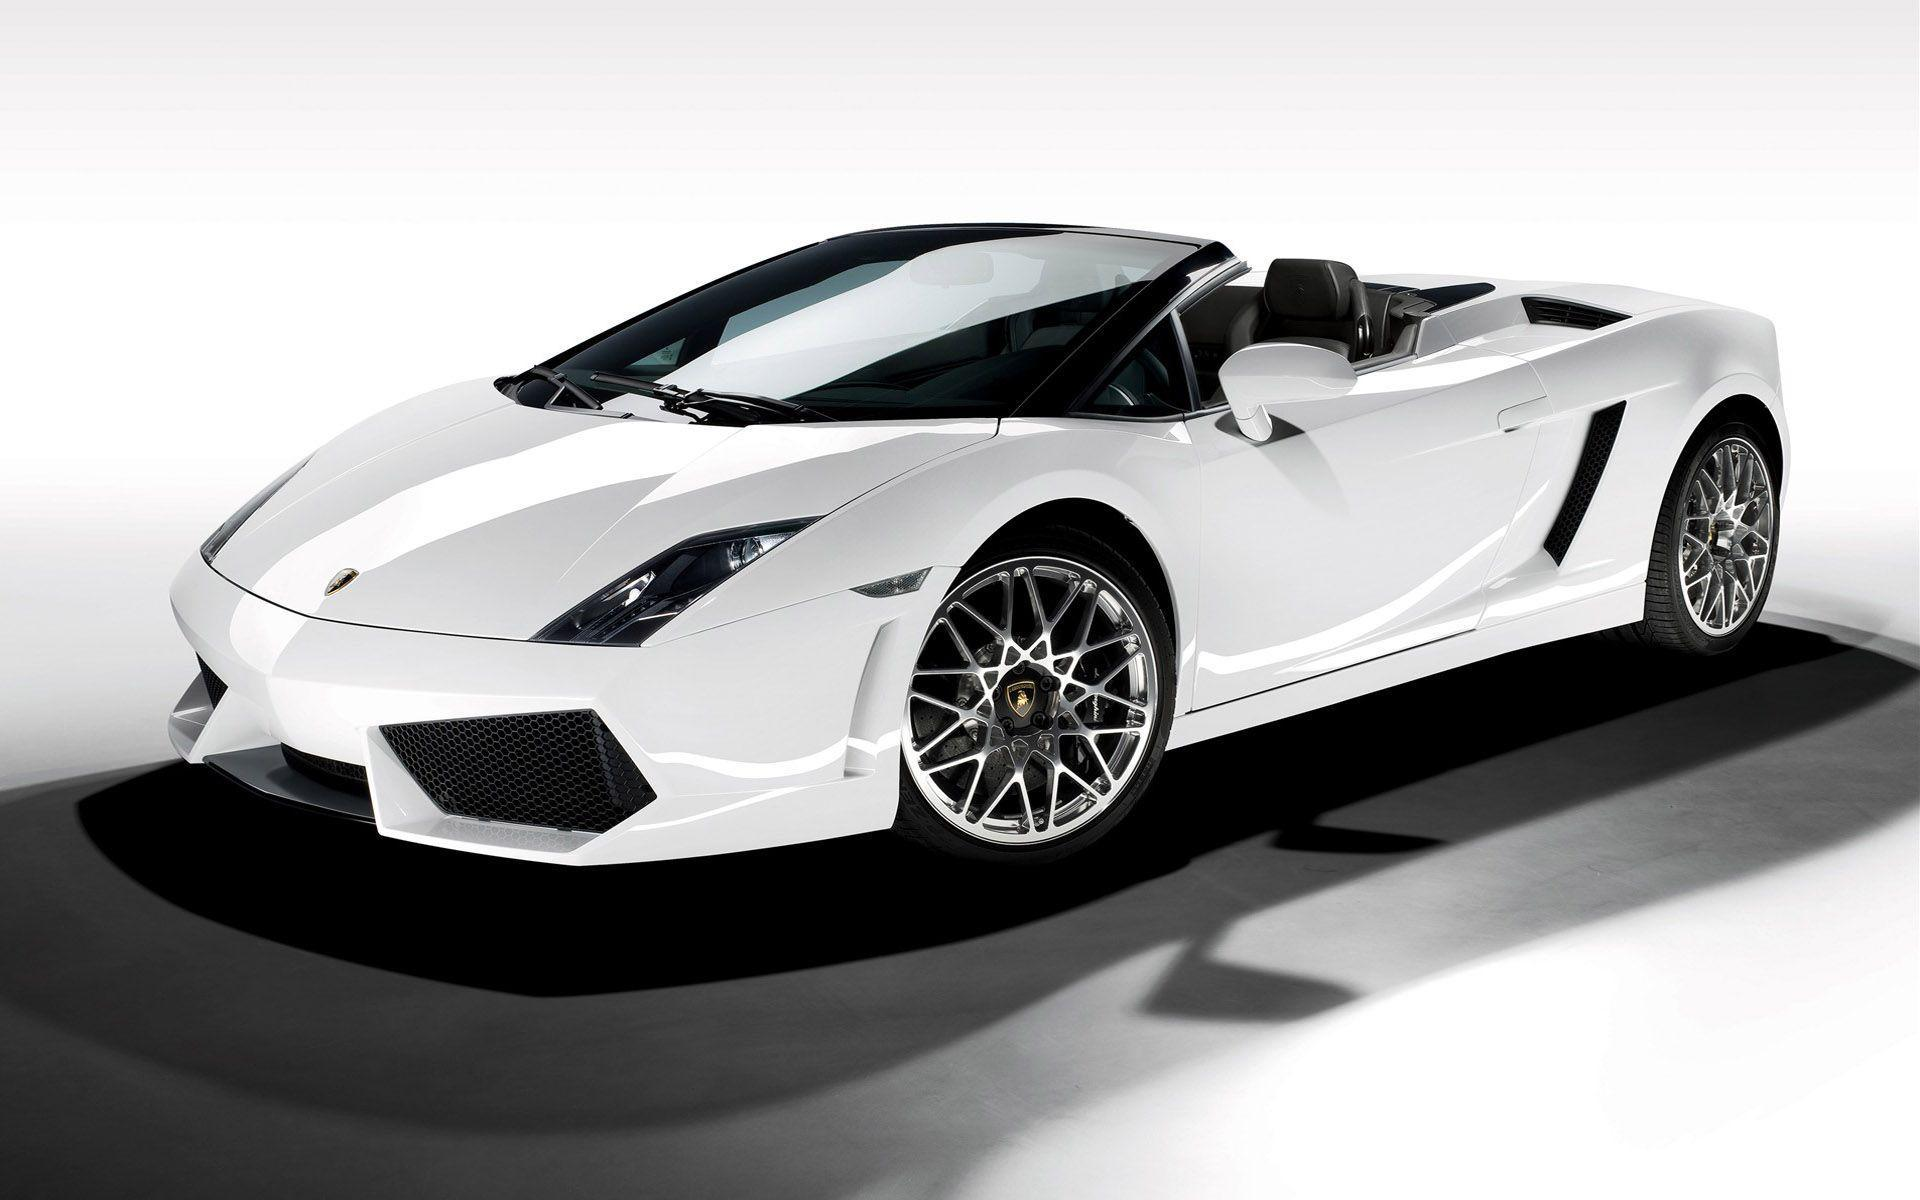 Lamborghini Cars Wallpapers | Facebook Timeline Cover Photos ...